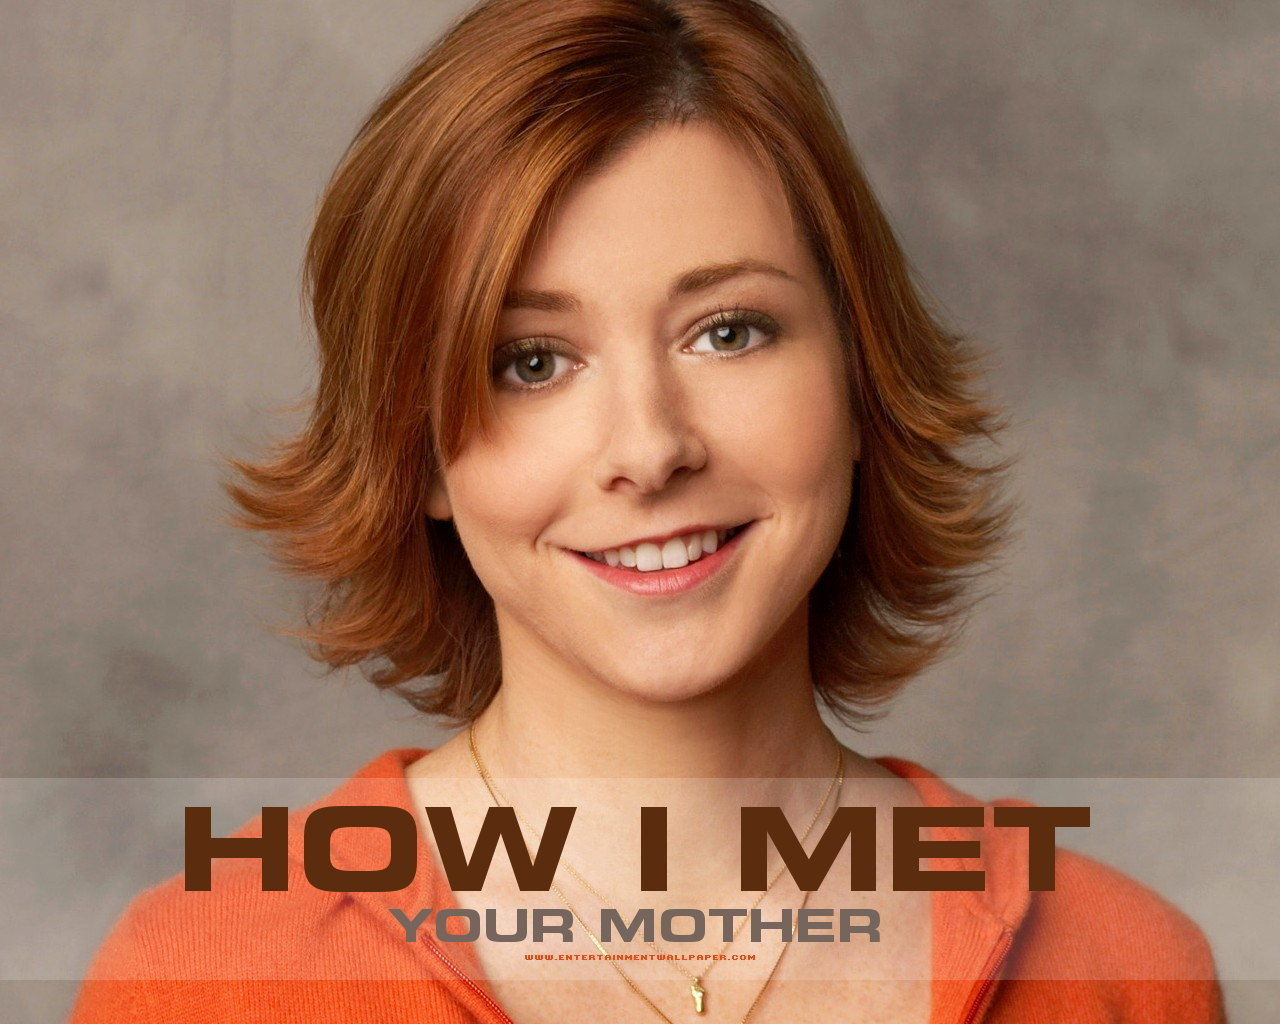 Lily - How I Met Your Mother Wallpaper (2960637) - Fanpop